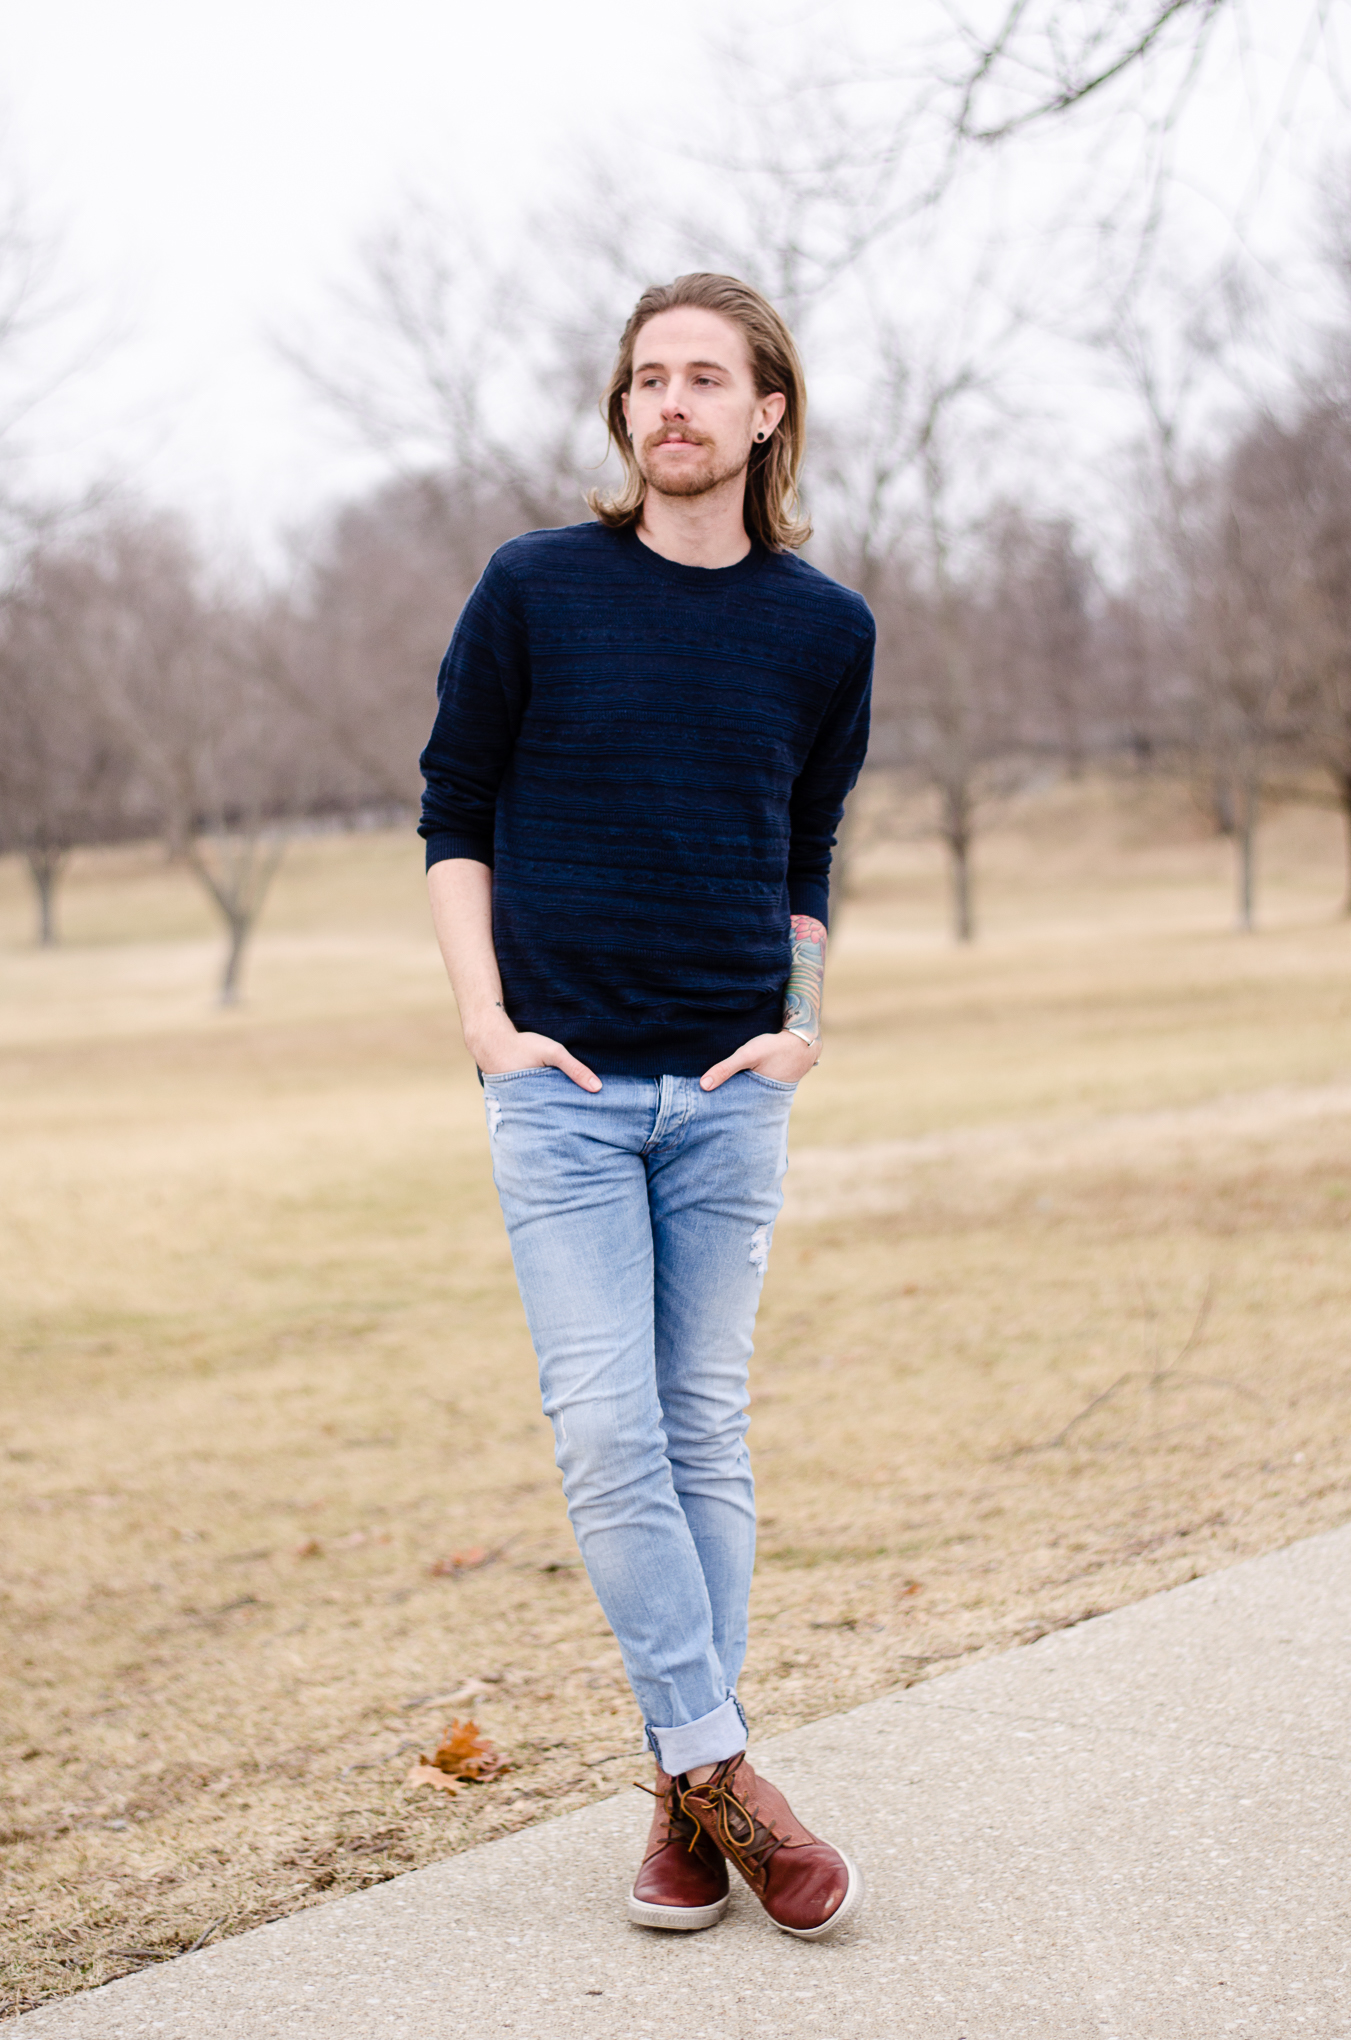 The Kentucky Gent, men's fashion and lifestyle blogger, gears up for NYFW.